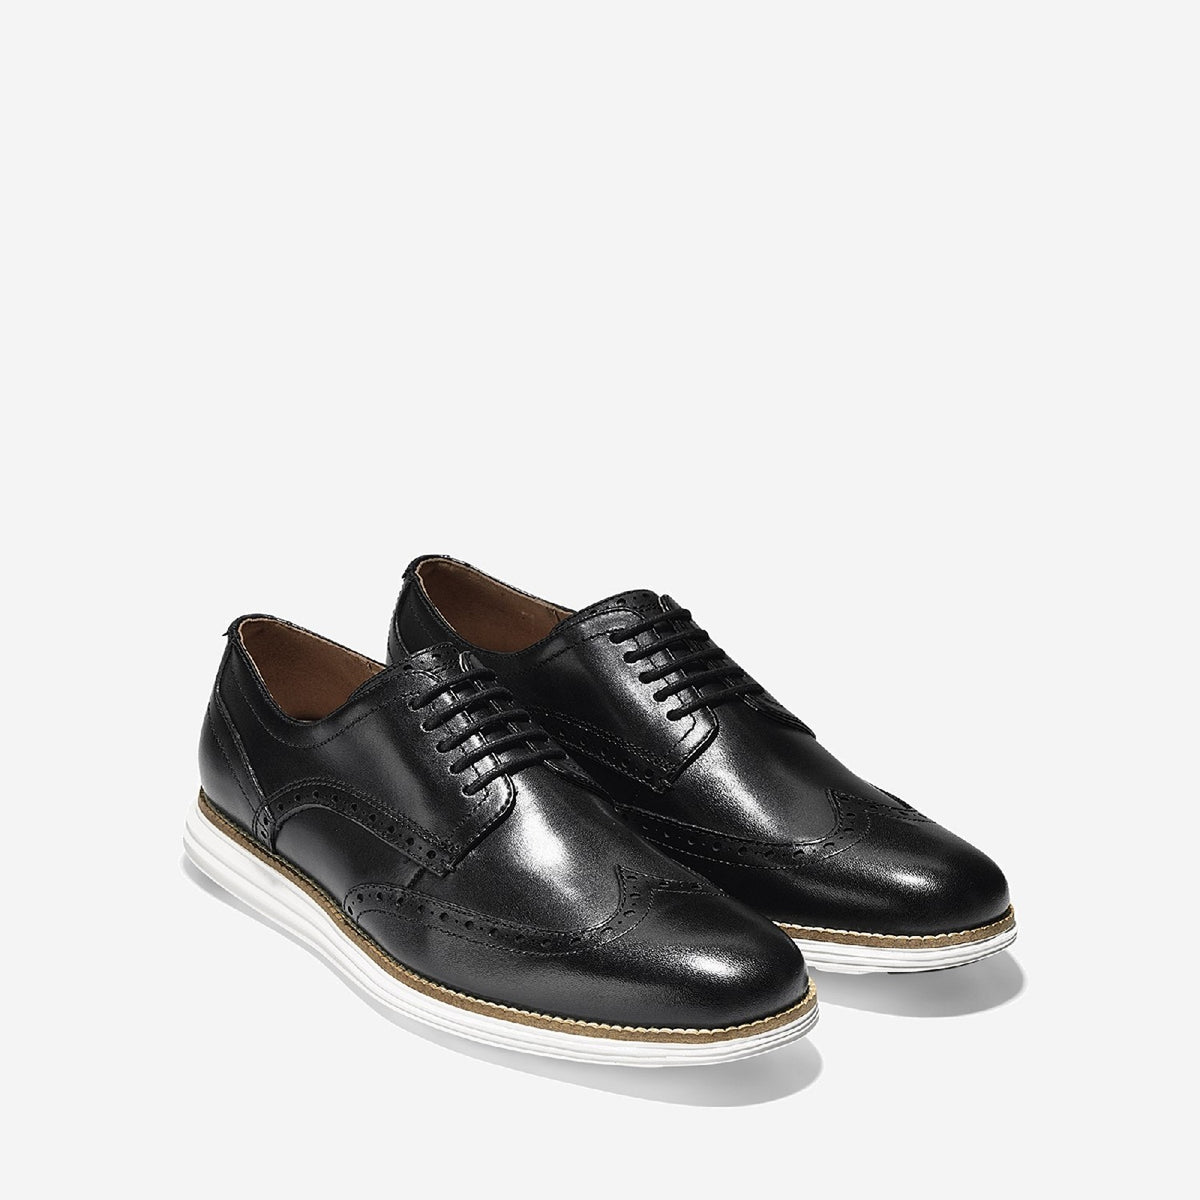 Men's Original Grand Wingtip Oxford  Black/White